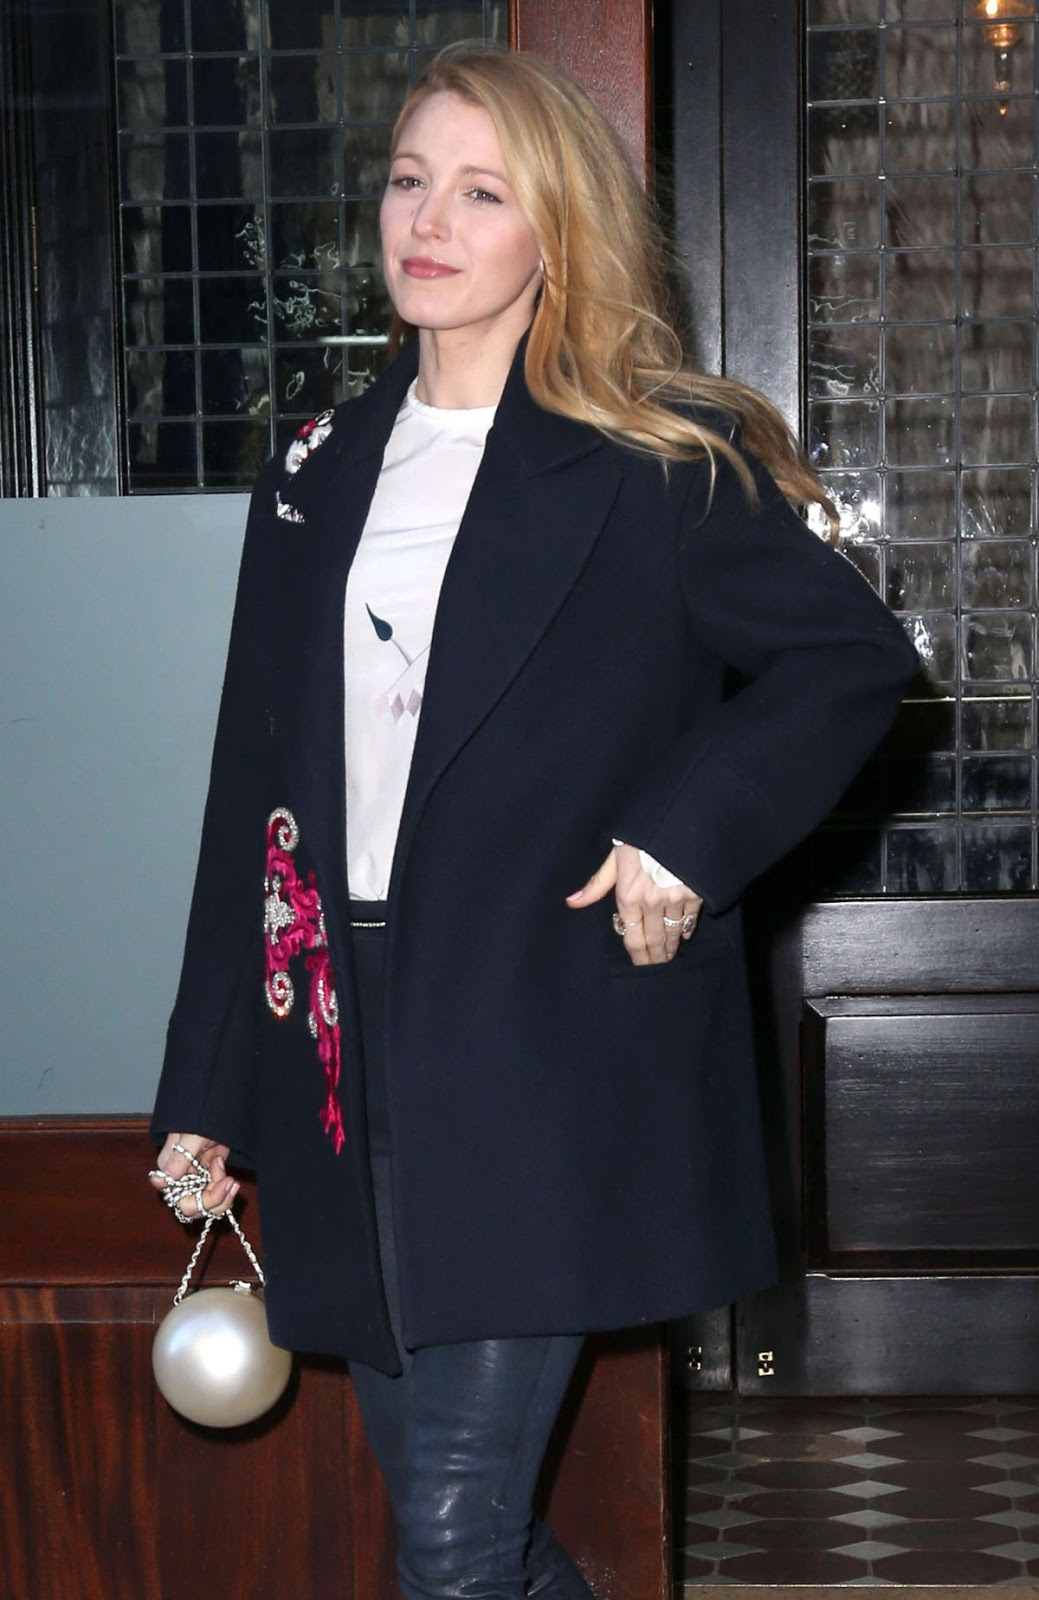 'All I See Is You' actress Blake Lively Leaves Hotel in New York